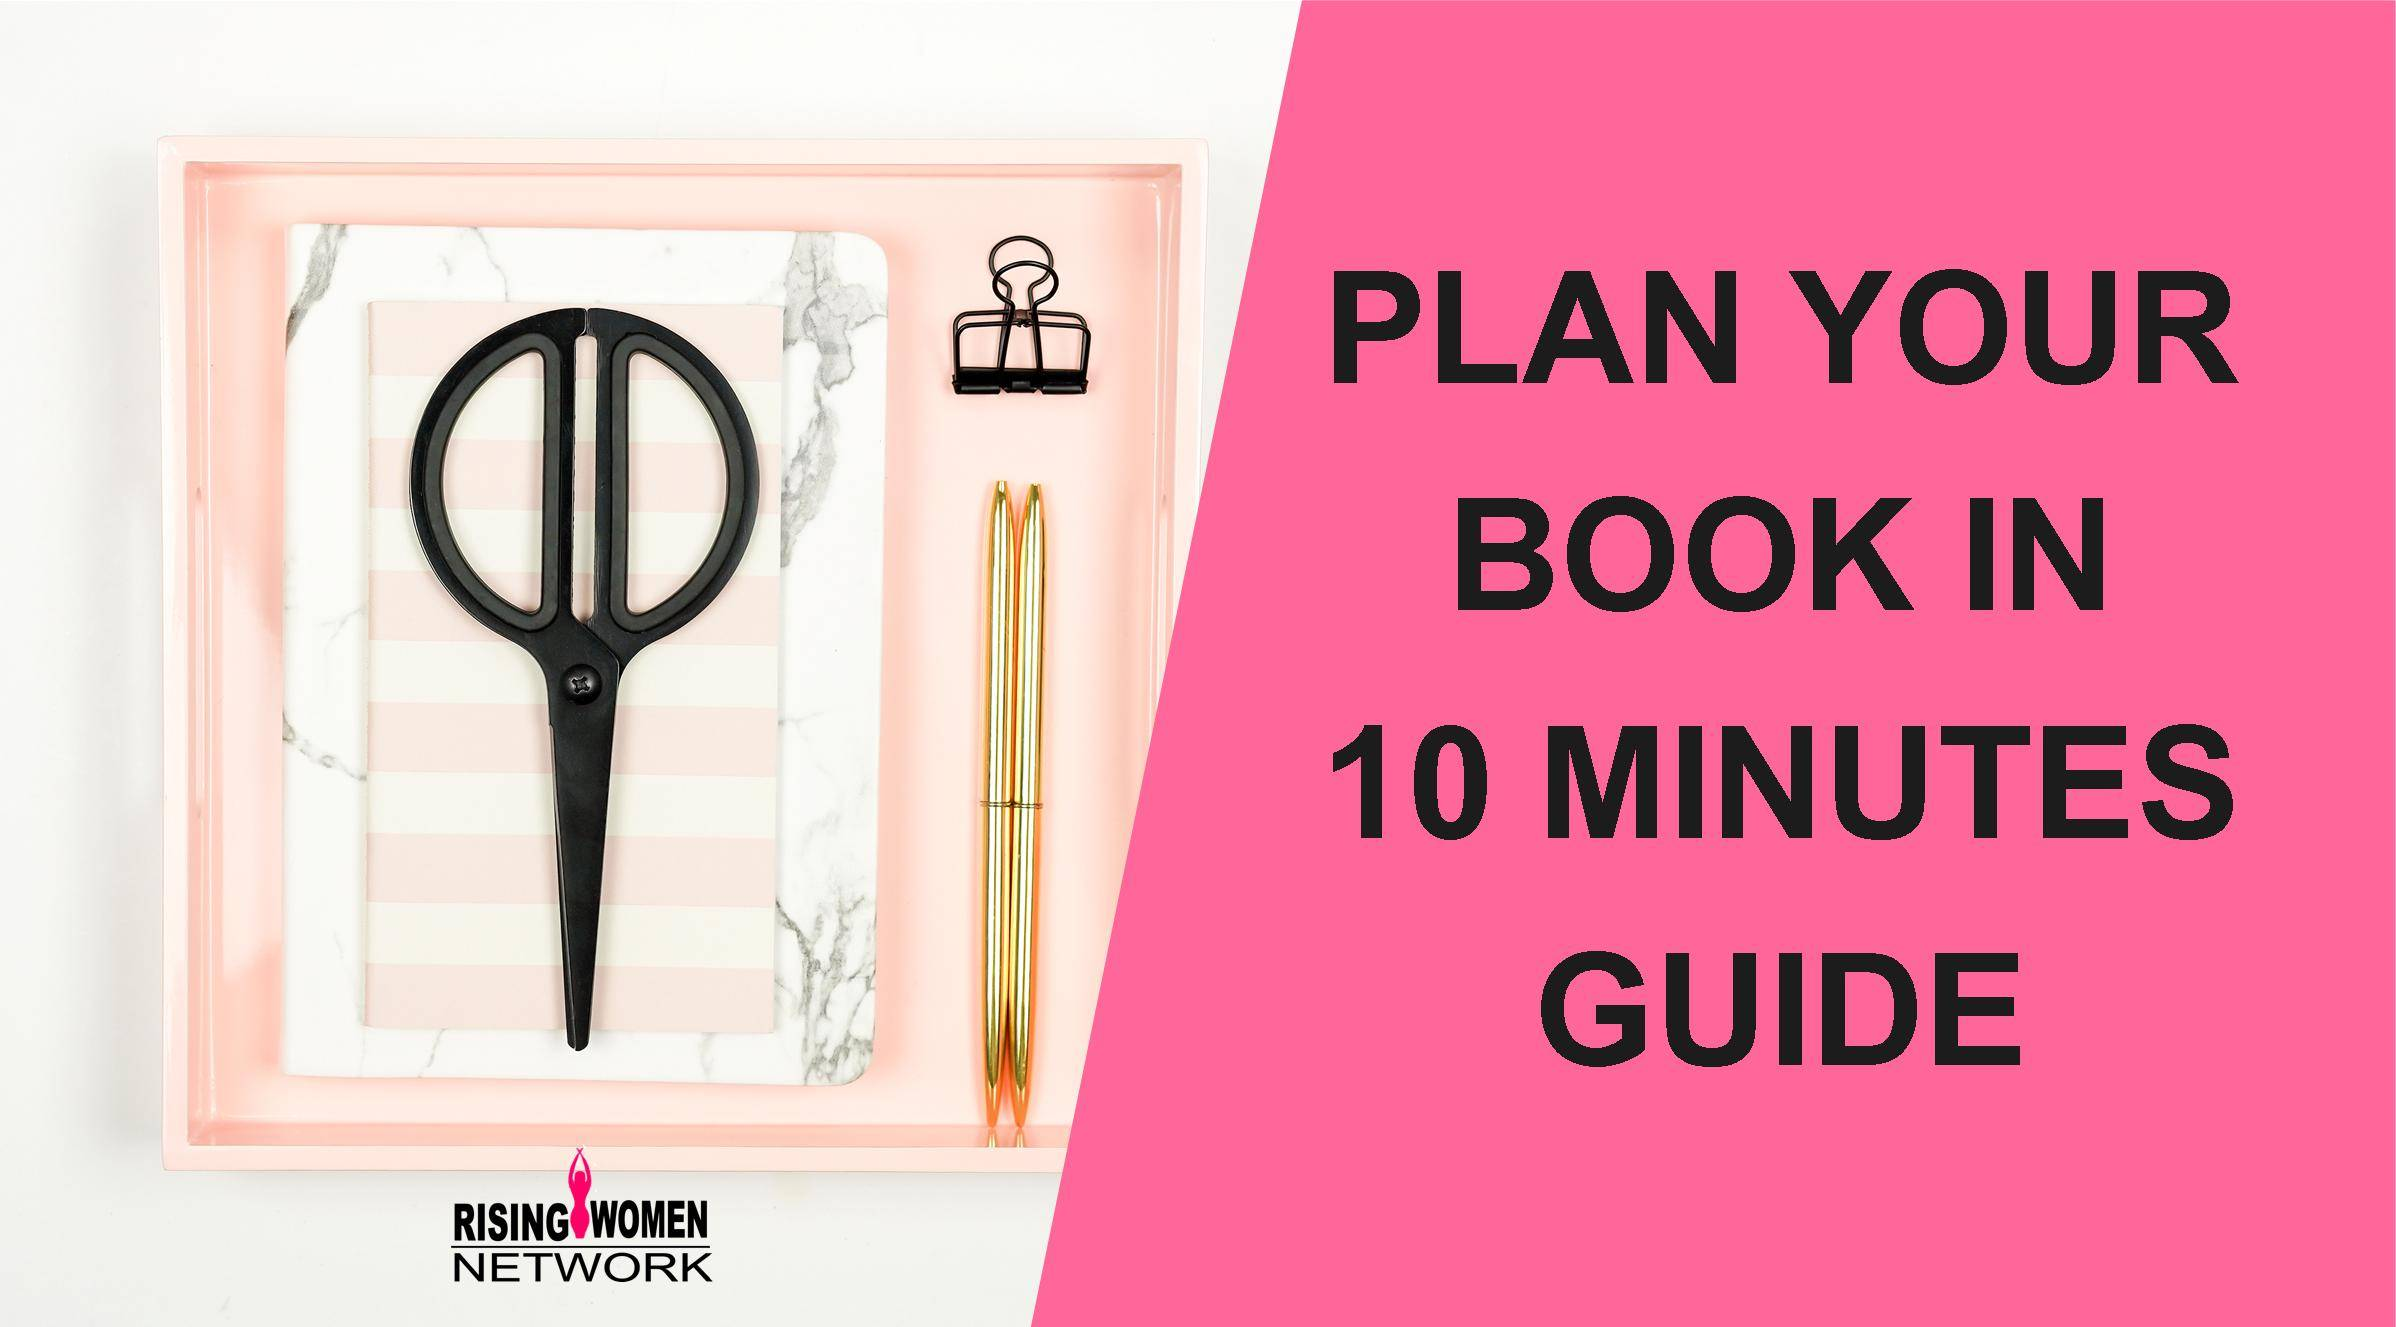 Plan Your Book In 10 Minutes